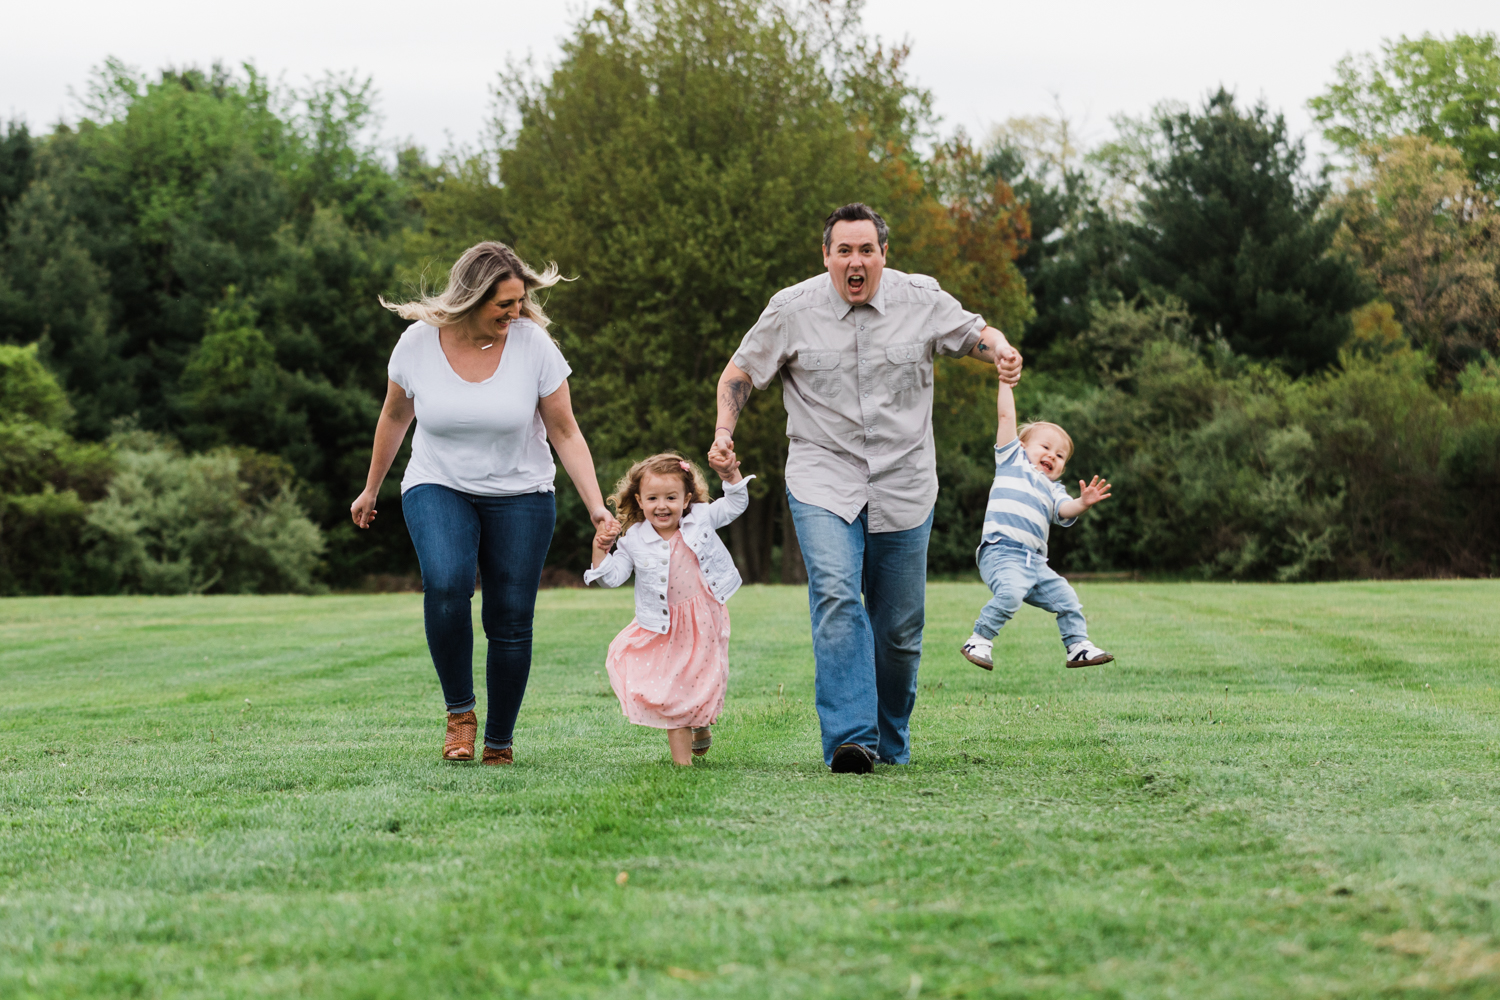 Book your session! - Let me capture the fun!